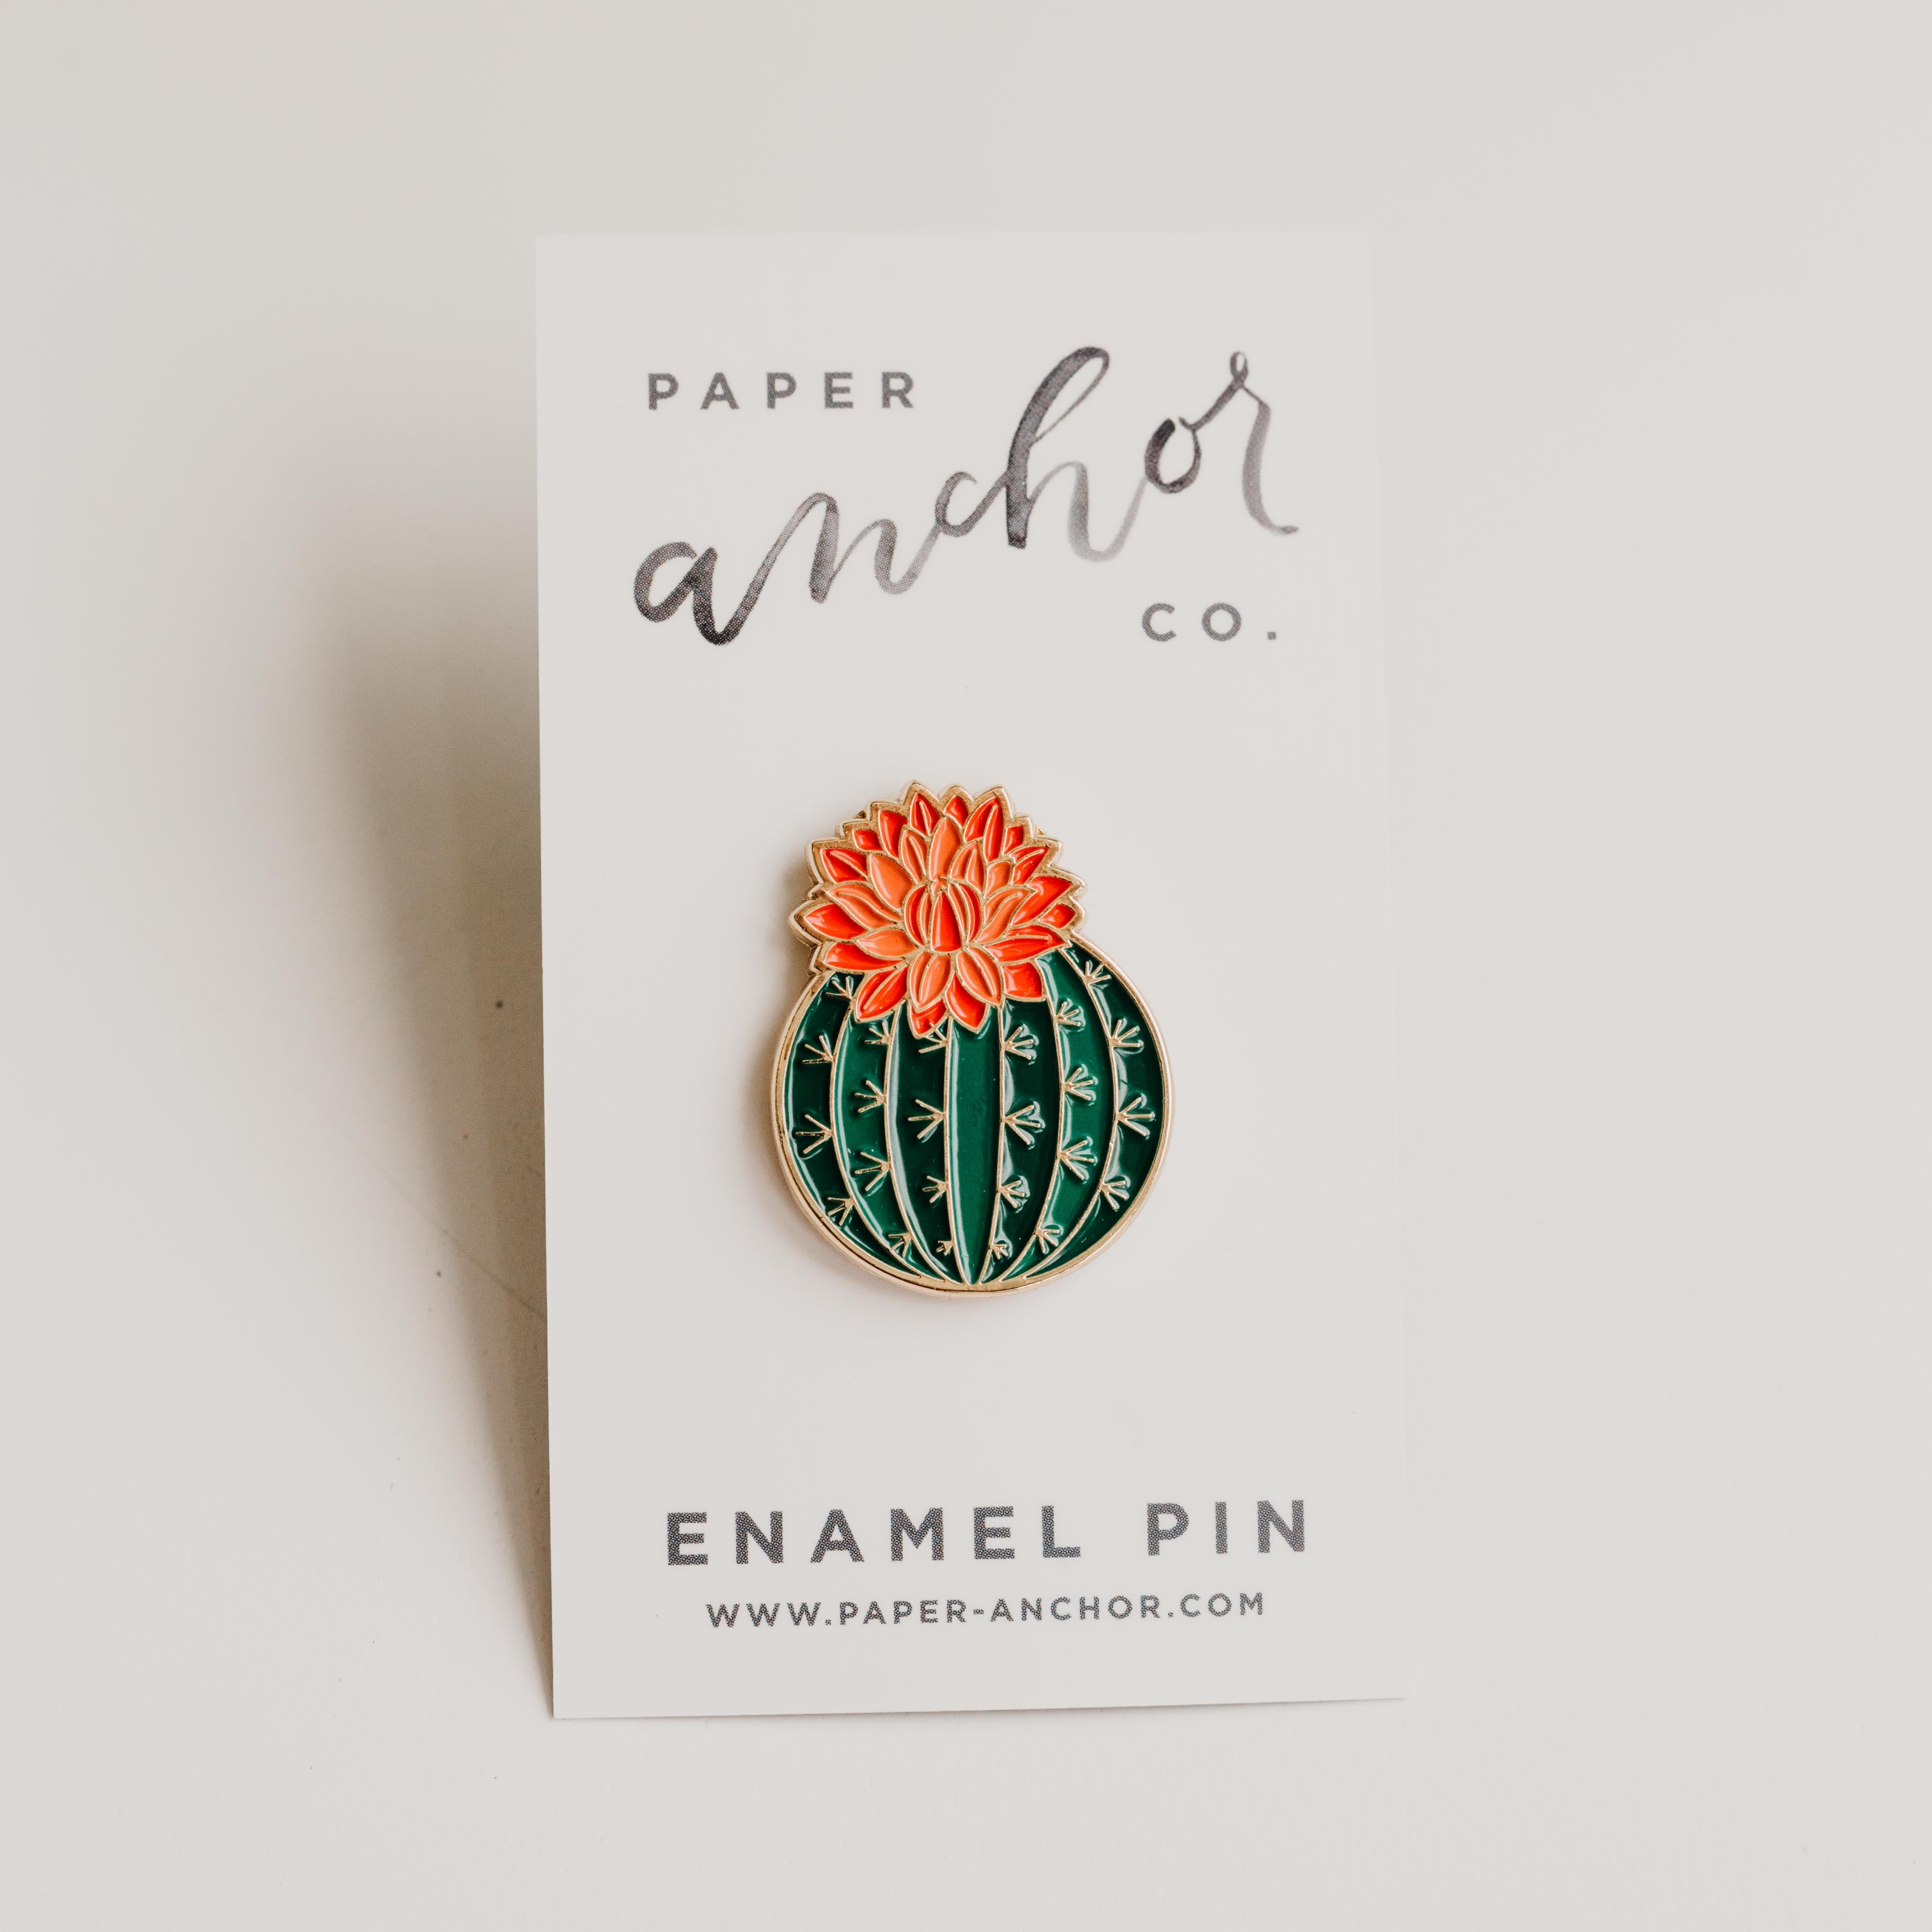 Paper Anchor Co. - Julia Blooming Cactus Lapel Pin